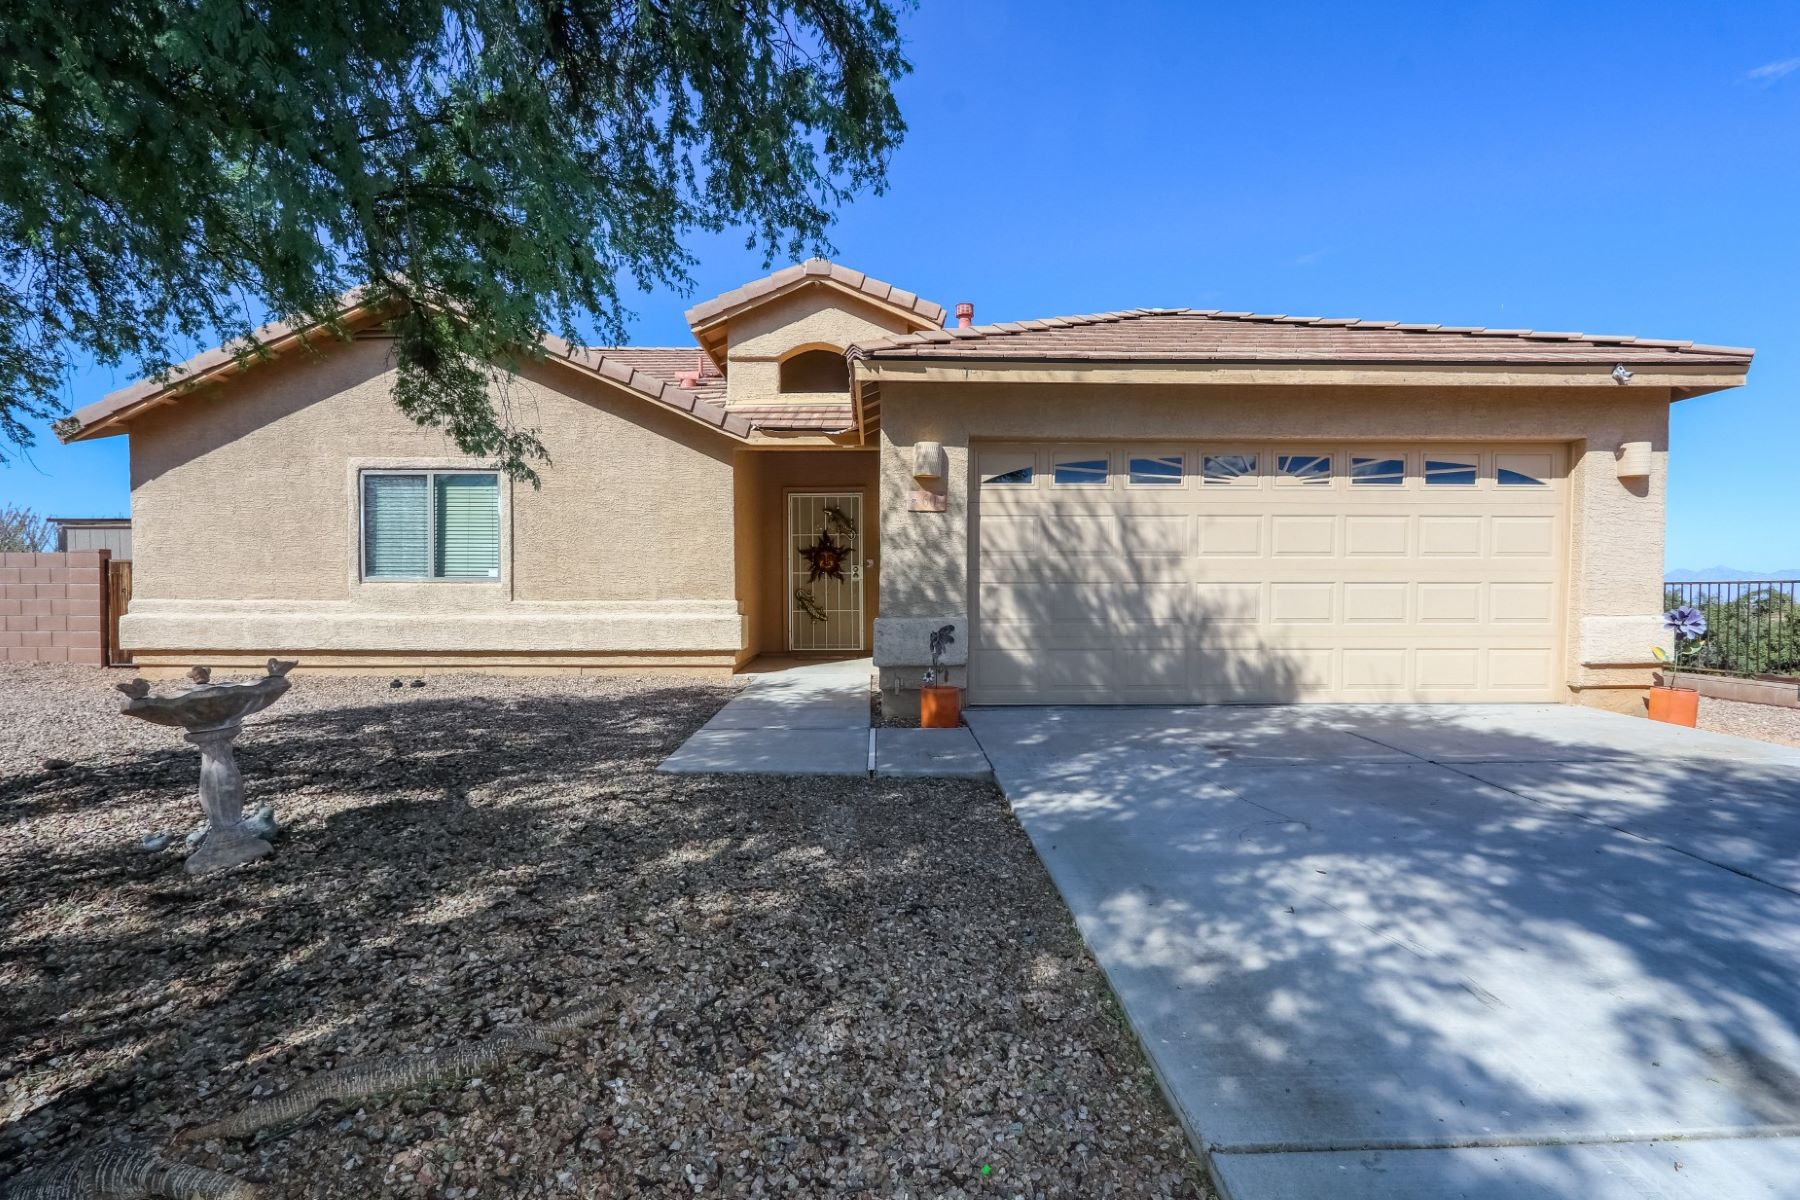 Single Family Homes for Sale at Great Family Home With Great School District 604 W. Grantham Street Vail, Arizona 85641 United States